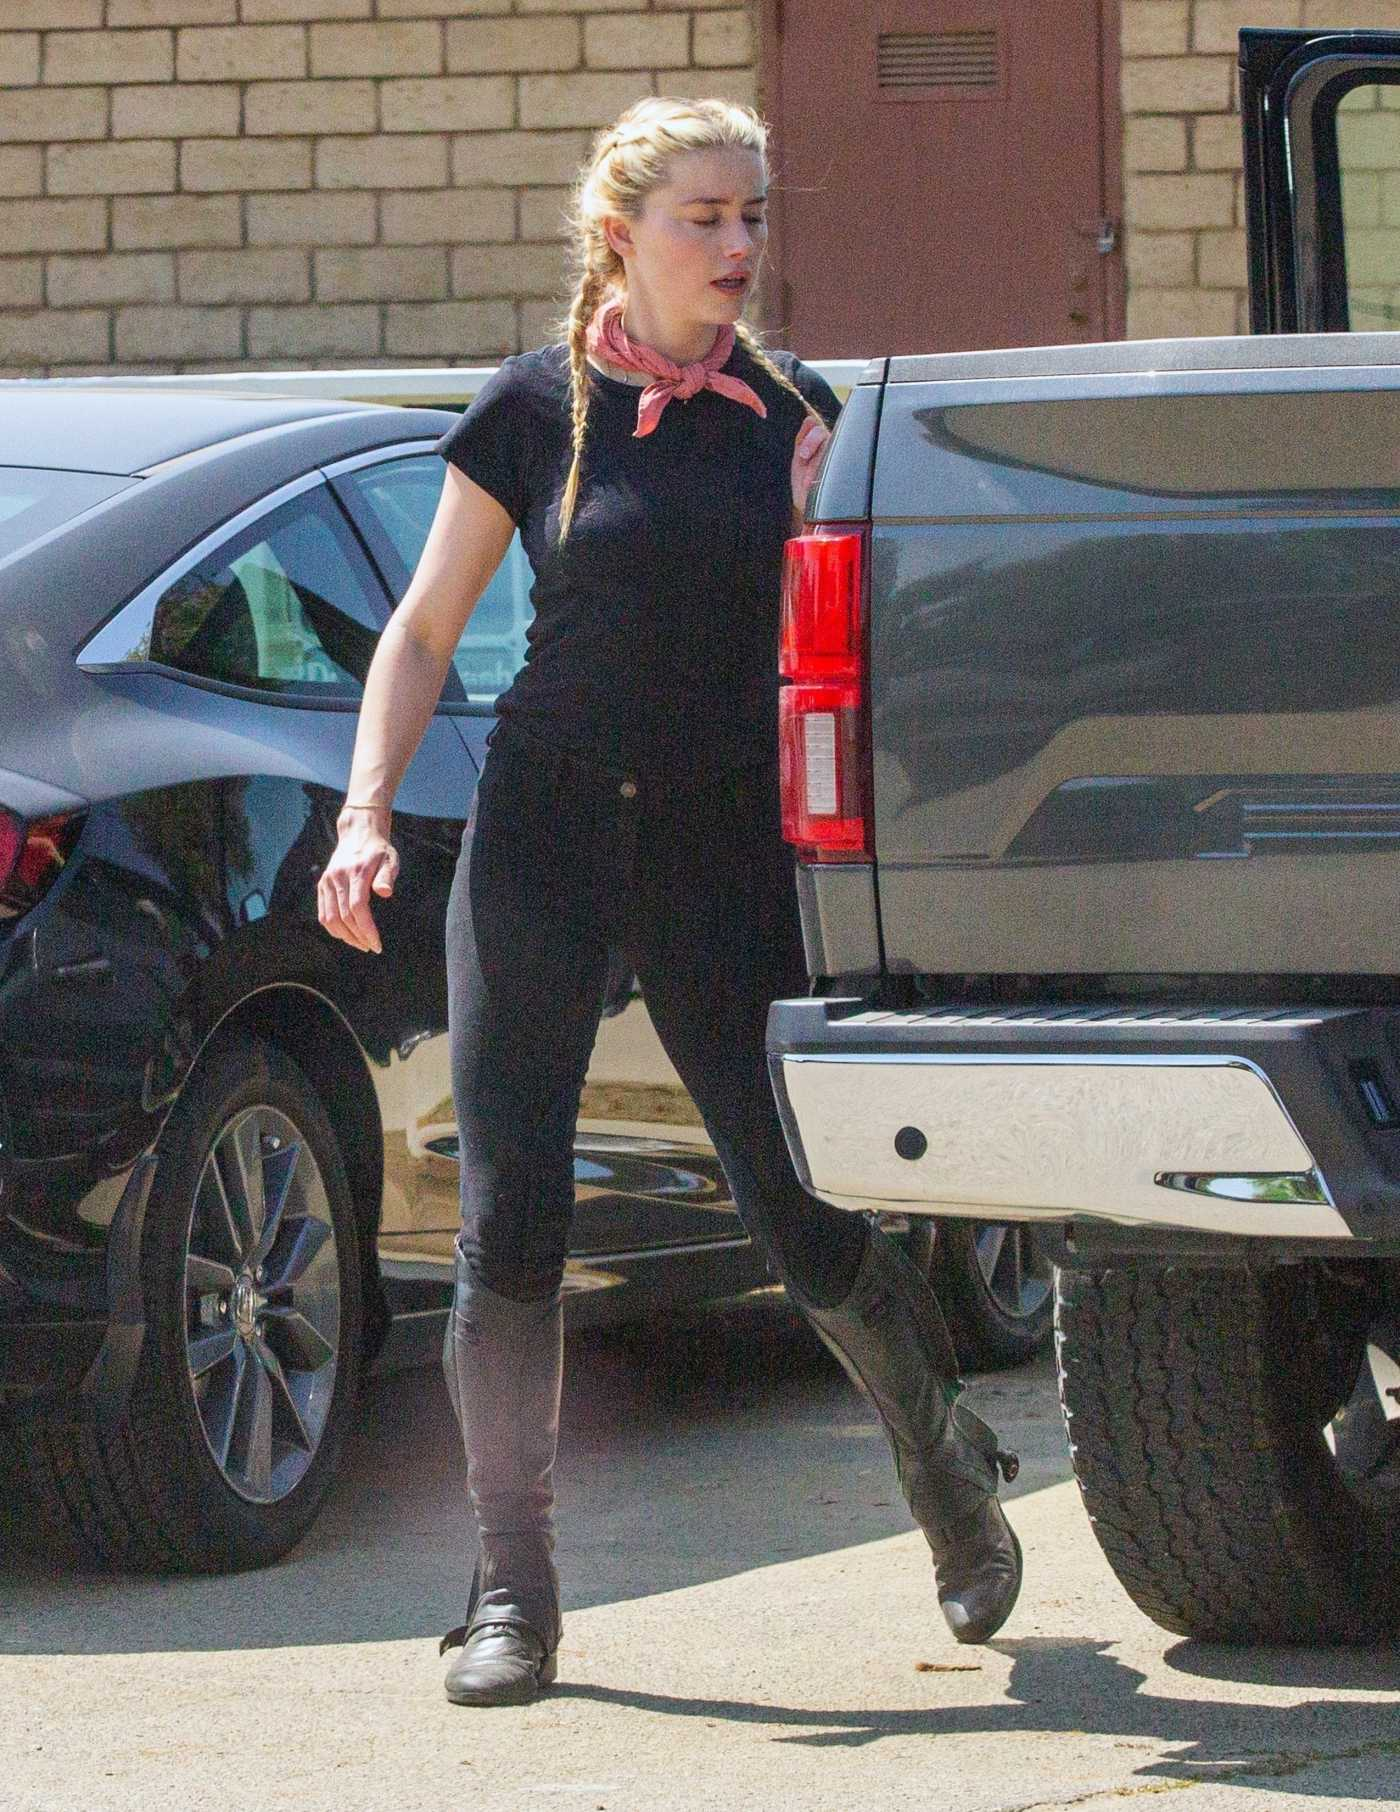 Amber Heard in a Black Tee Arrives at Horseback Riding in Los Angeles 09/23/2020